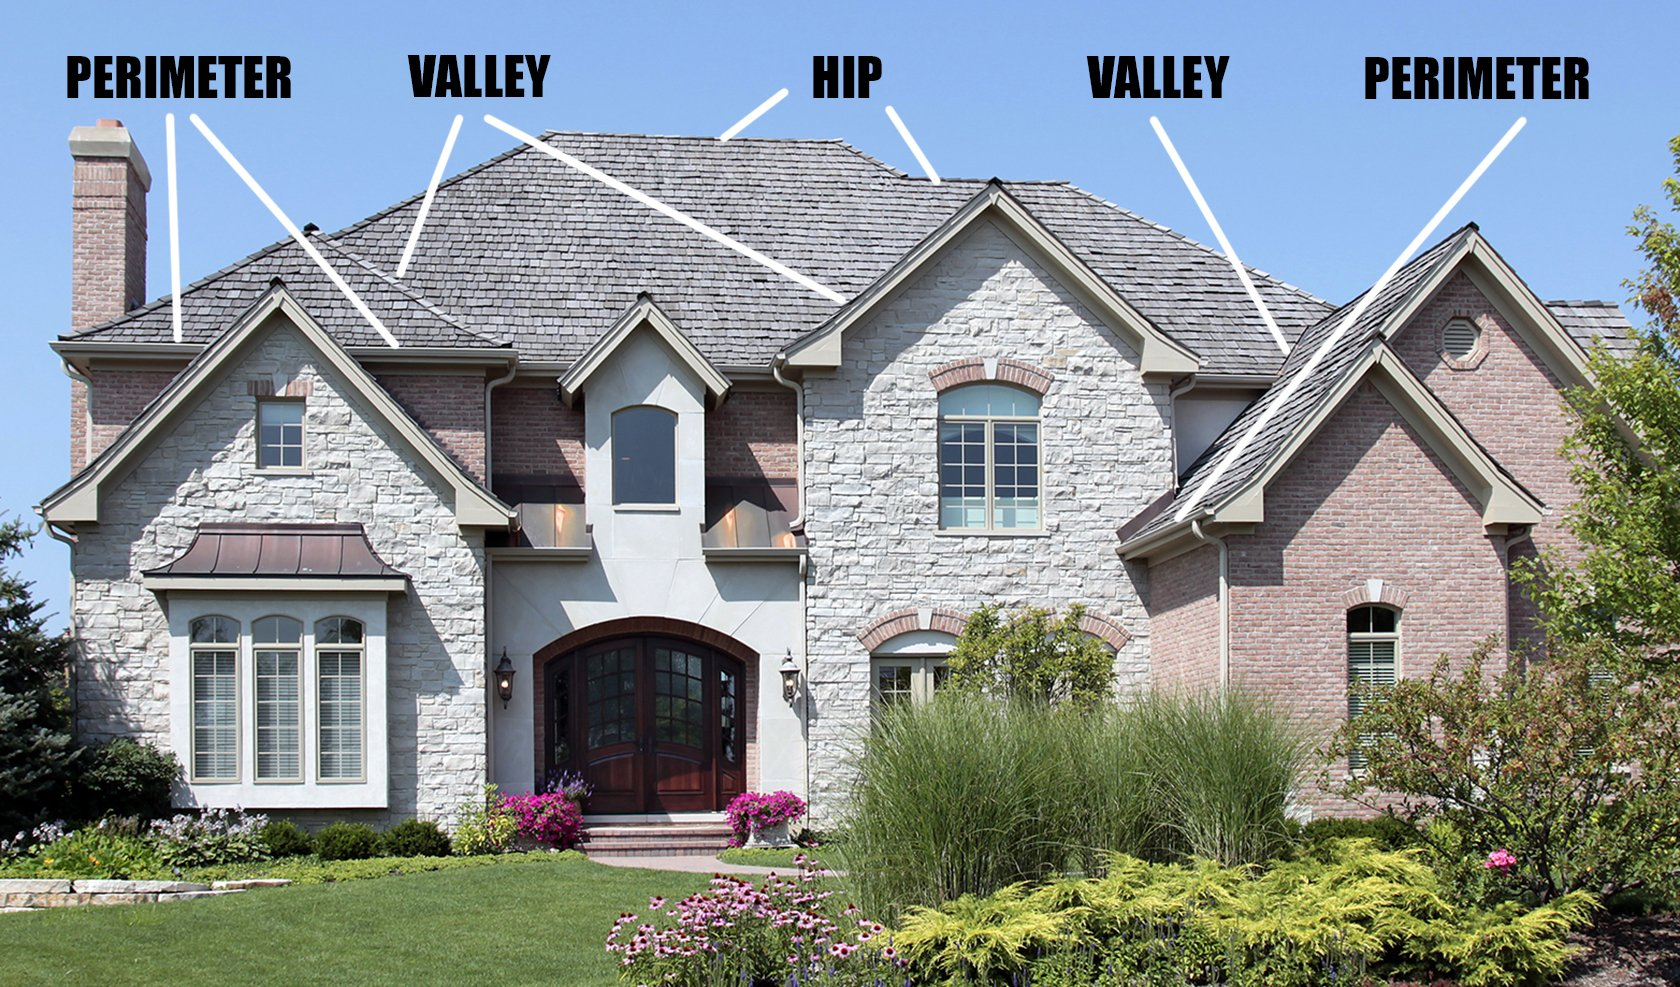 Hip, Valley and Gable Roof water solutions